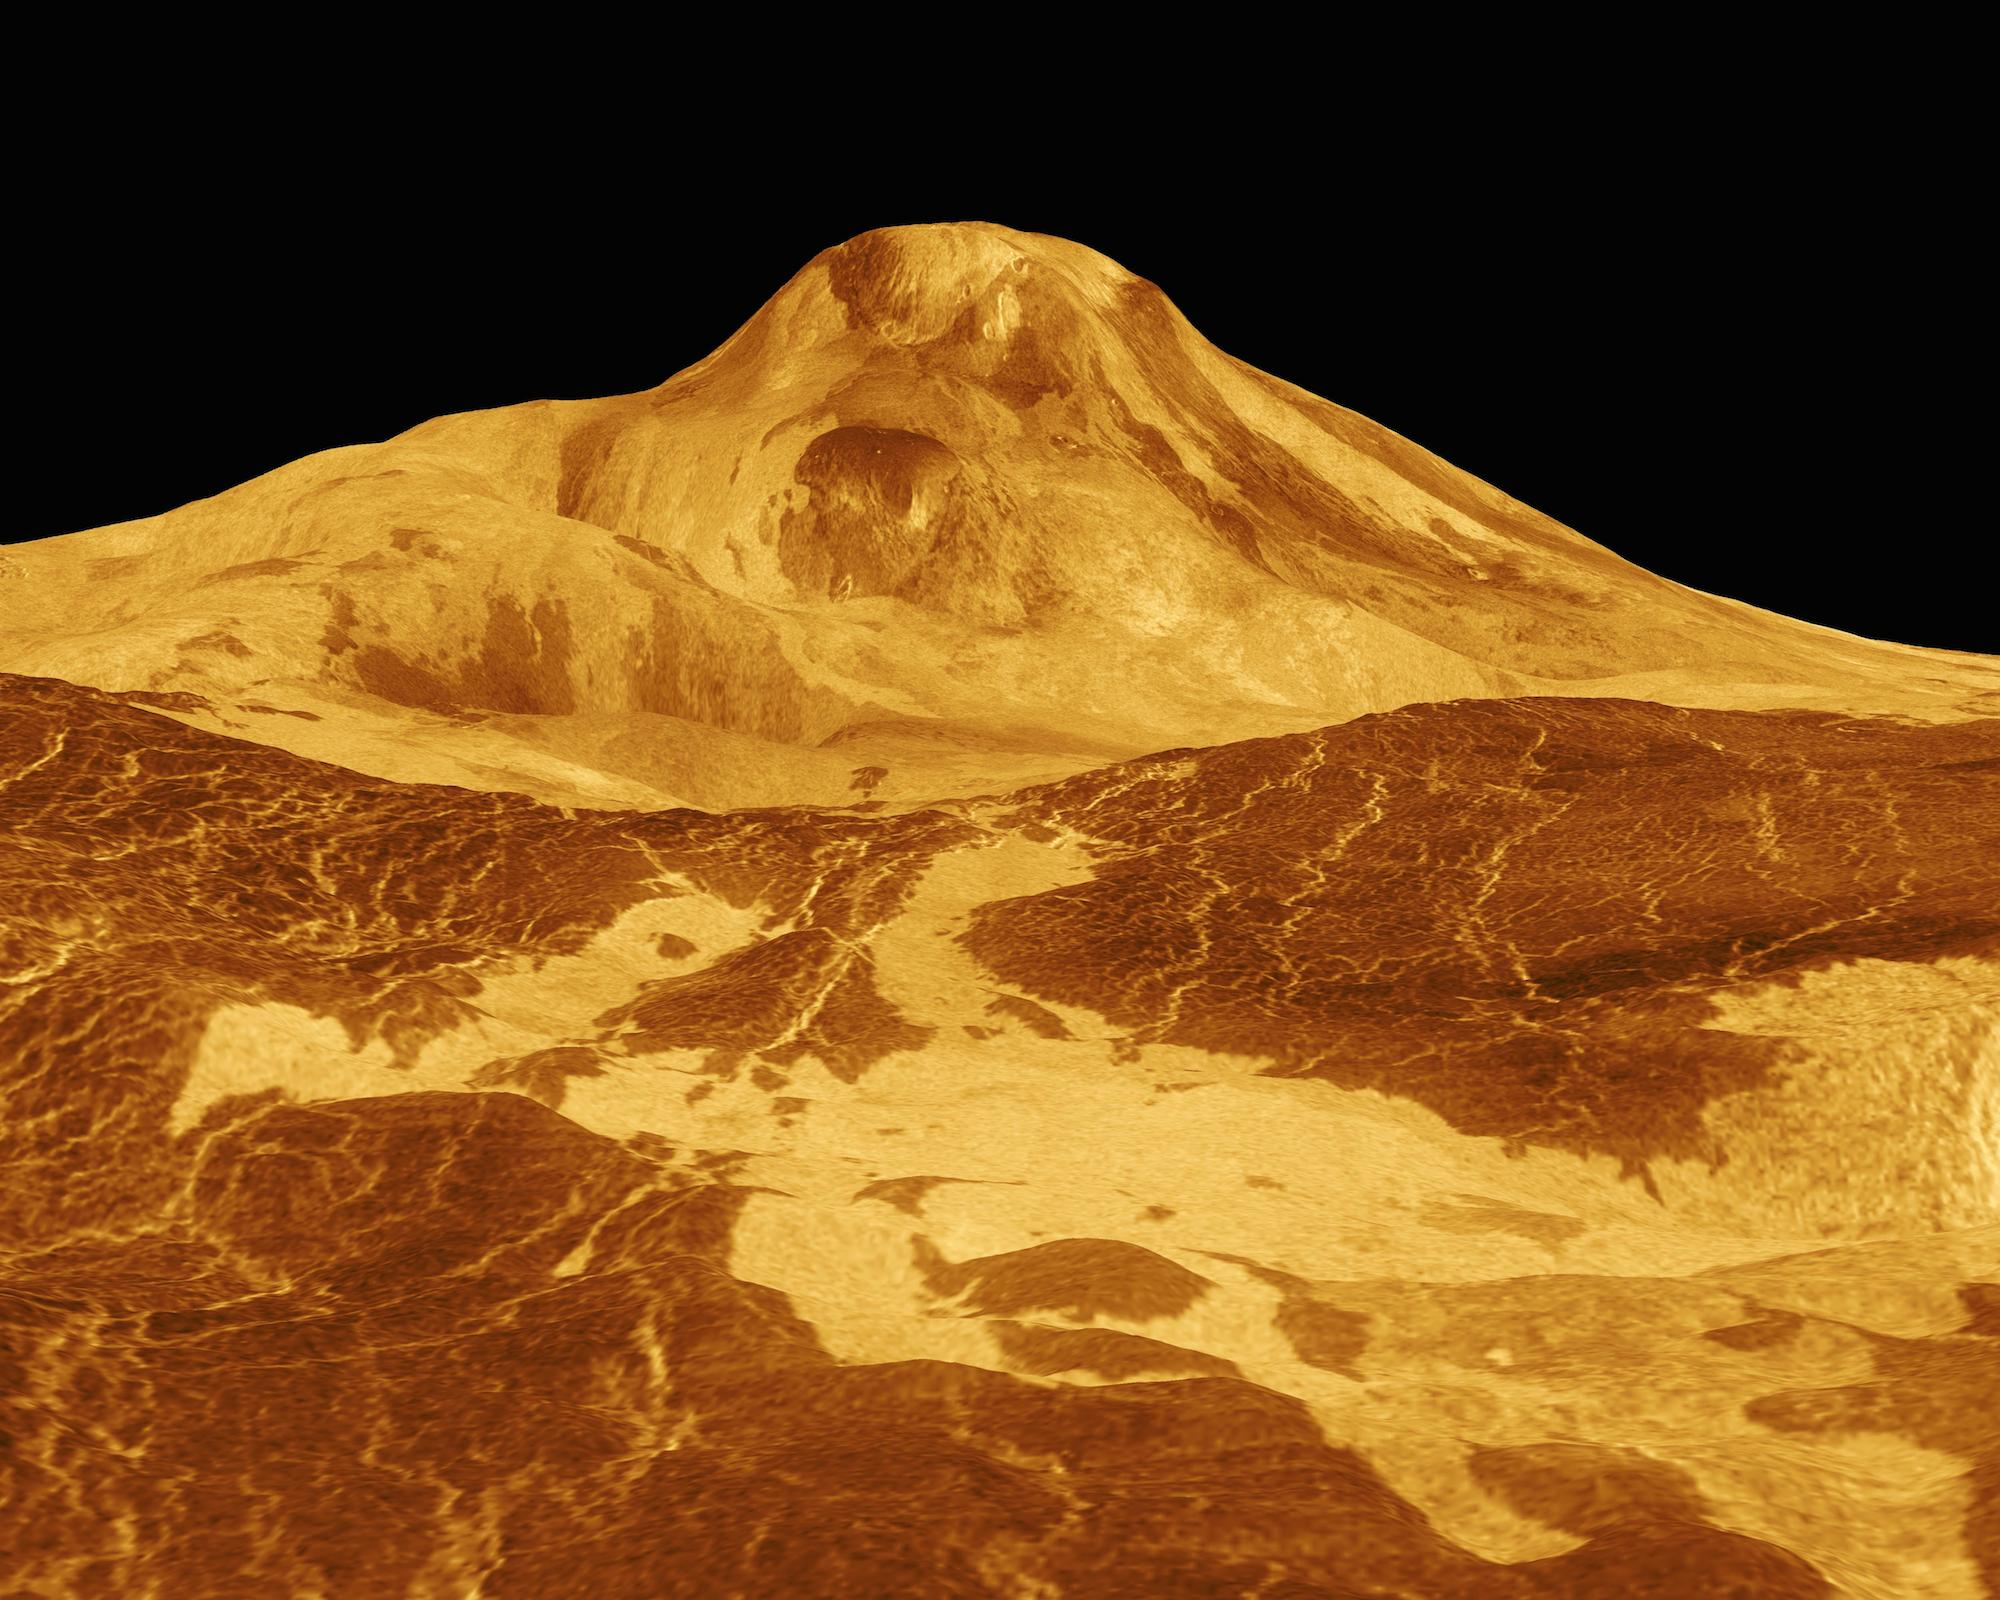 Venus' crust heals too fast for plate tectonics | Ars Technica